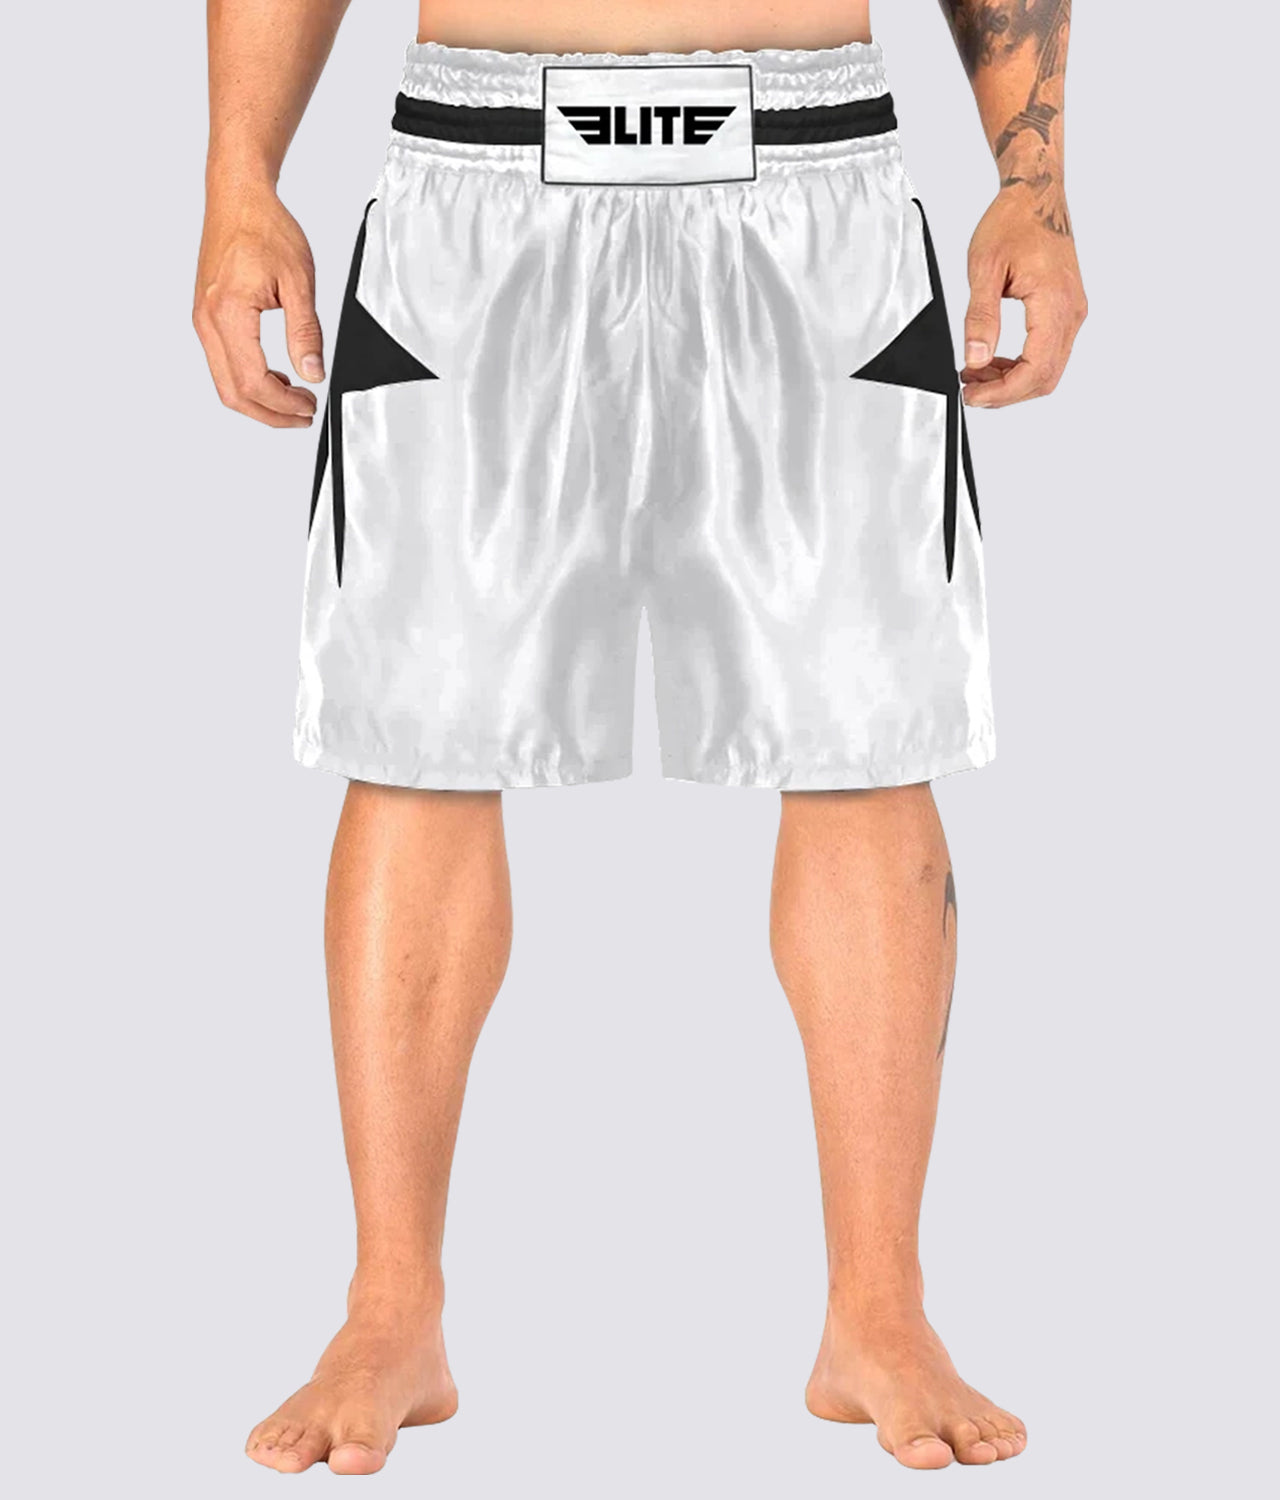 Elite Sports Star Series Sublimation Extreme Softness White/Black Boxing Shorts